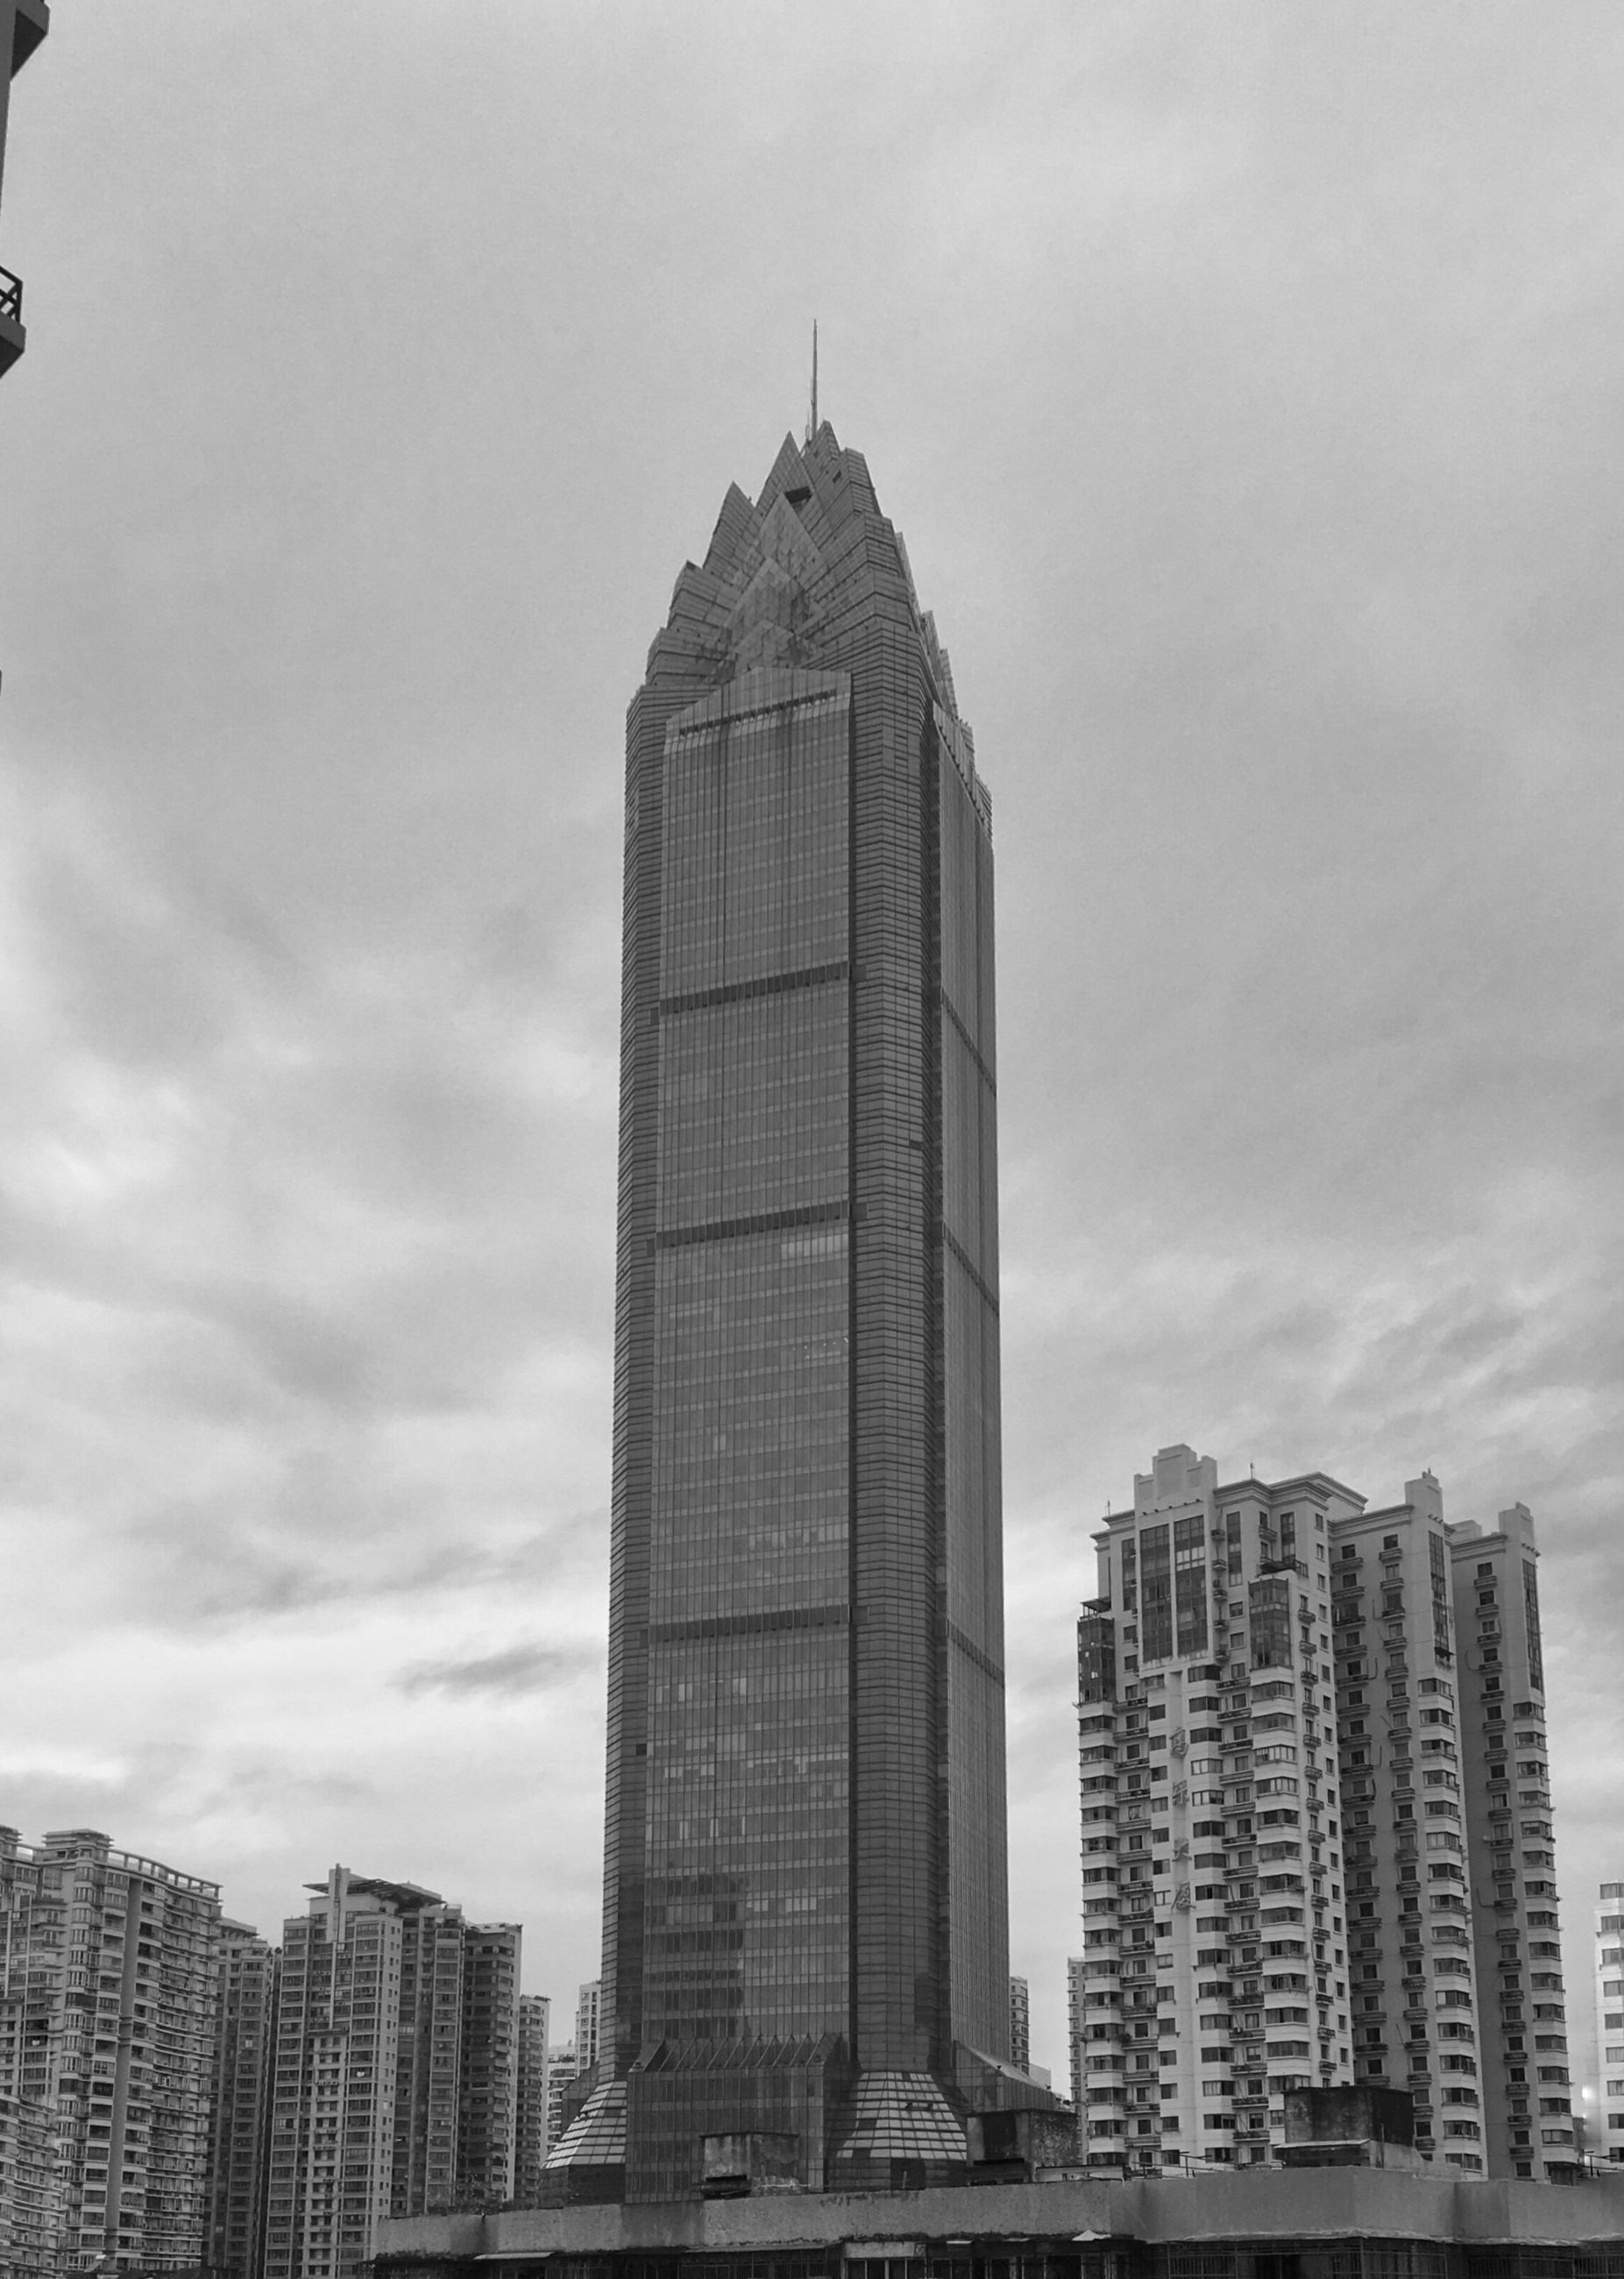 architecture, skyscraper, building exterior, modern, city, built structure, tall - high, tower, sky, cityscape, no people, tall, urban skyline, outdoors, day